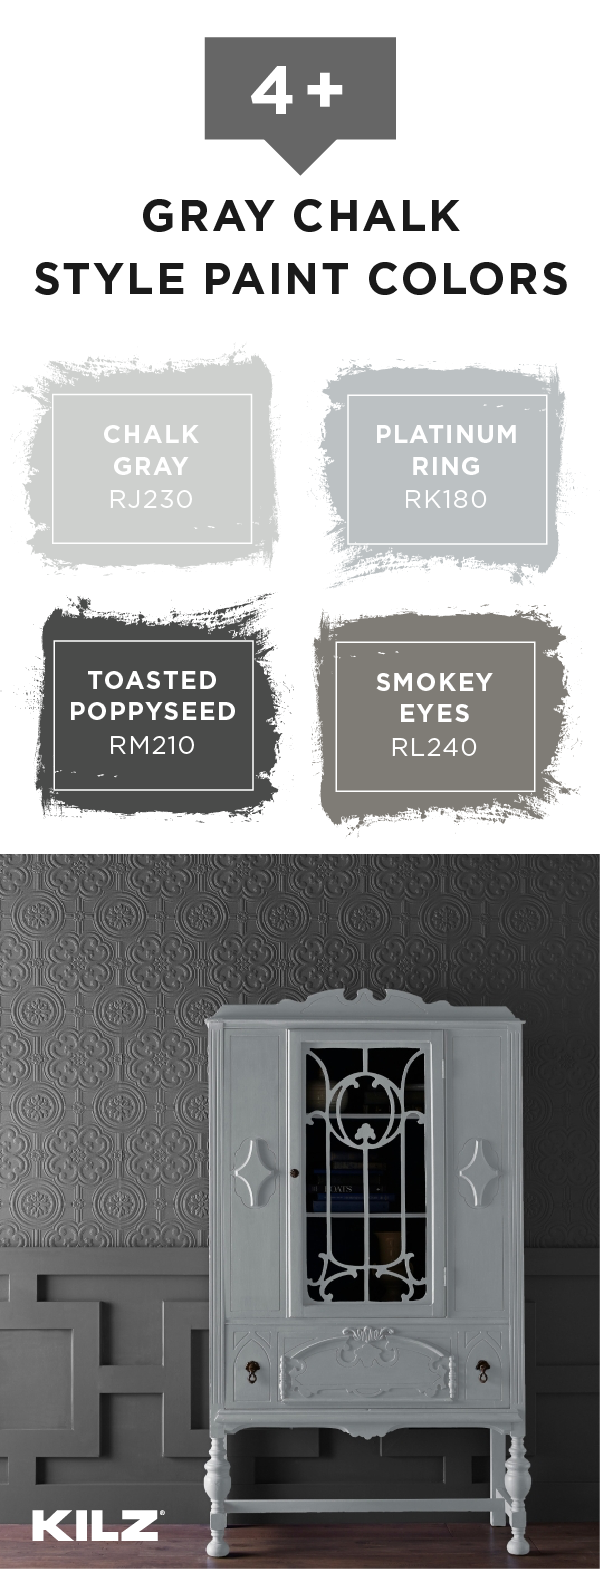 Neutral Color Palette To Give Your Home A Timeless Interior Design Style Luckily We Ve Got You Covered With These Gray Kilz Chalk Paint Colors